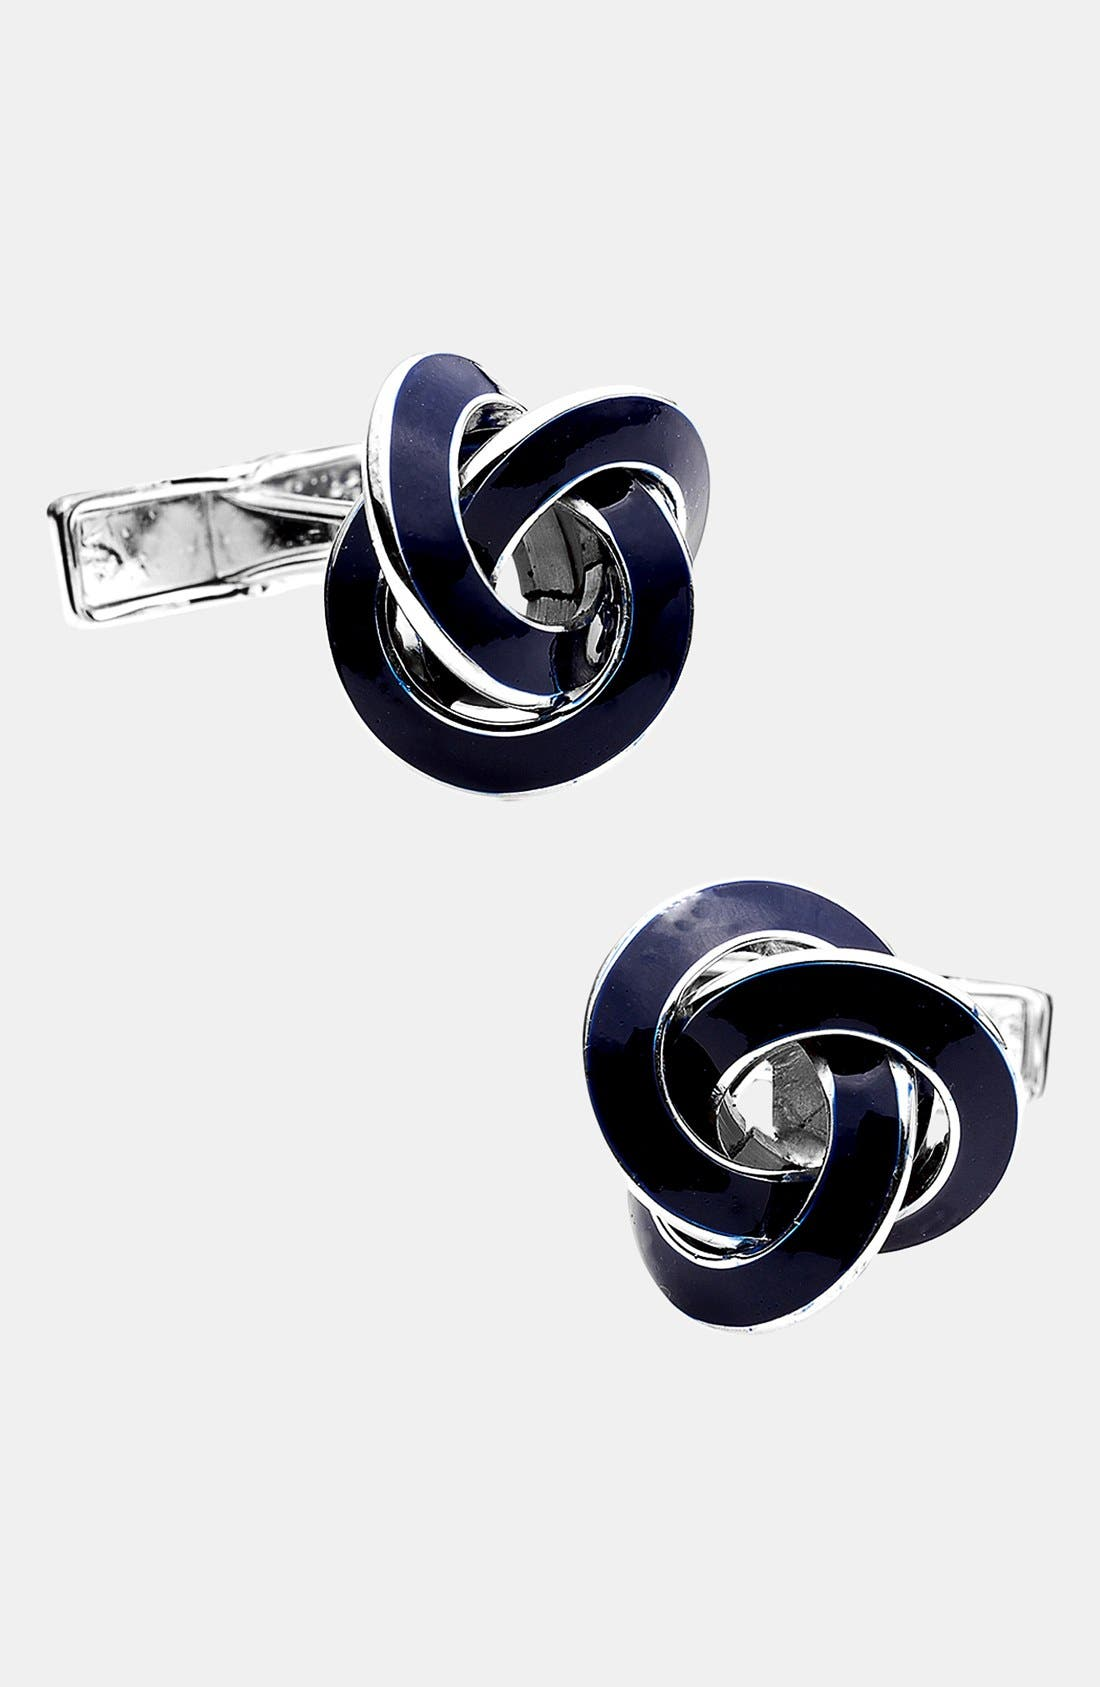 Alternate Image 1 Selected - Ravi Ratan 'Knot' Cuff Links